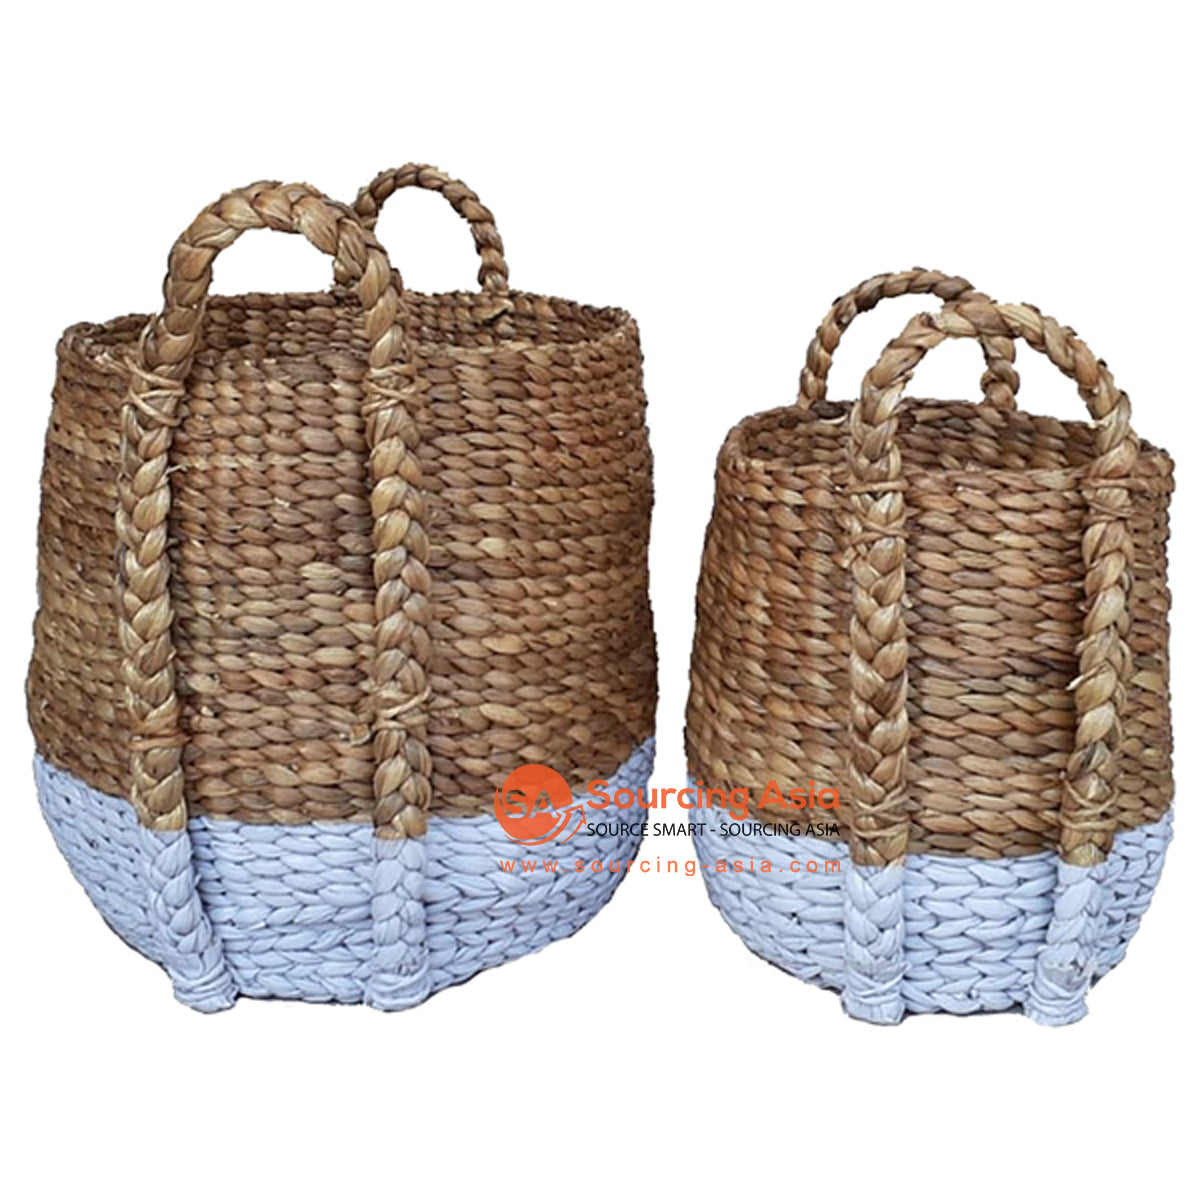 SHL168-2 SET OF TWO BROWN AND WHITE WATER HYACINTH BASKETS